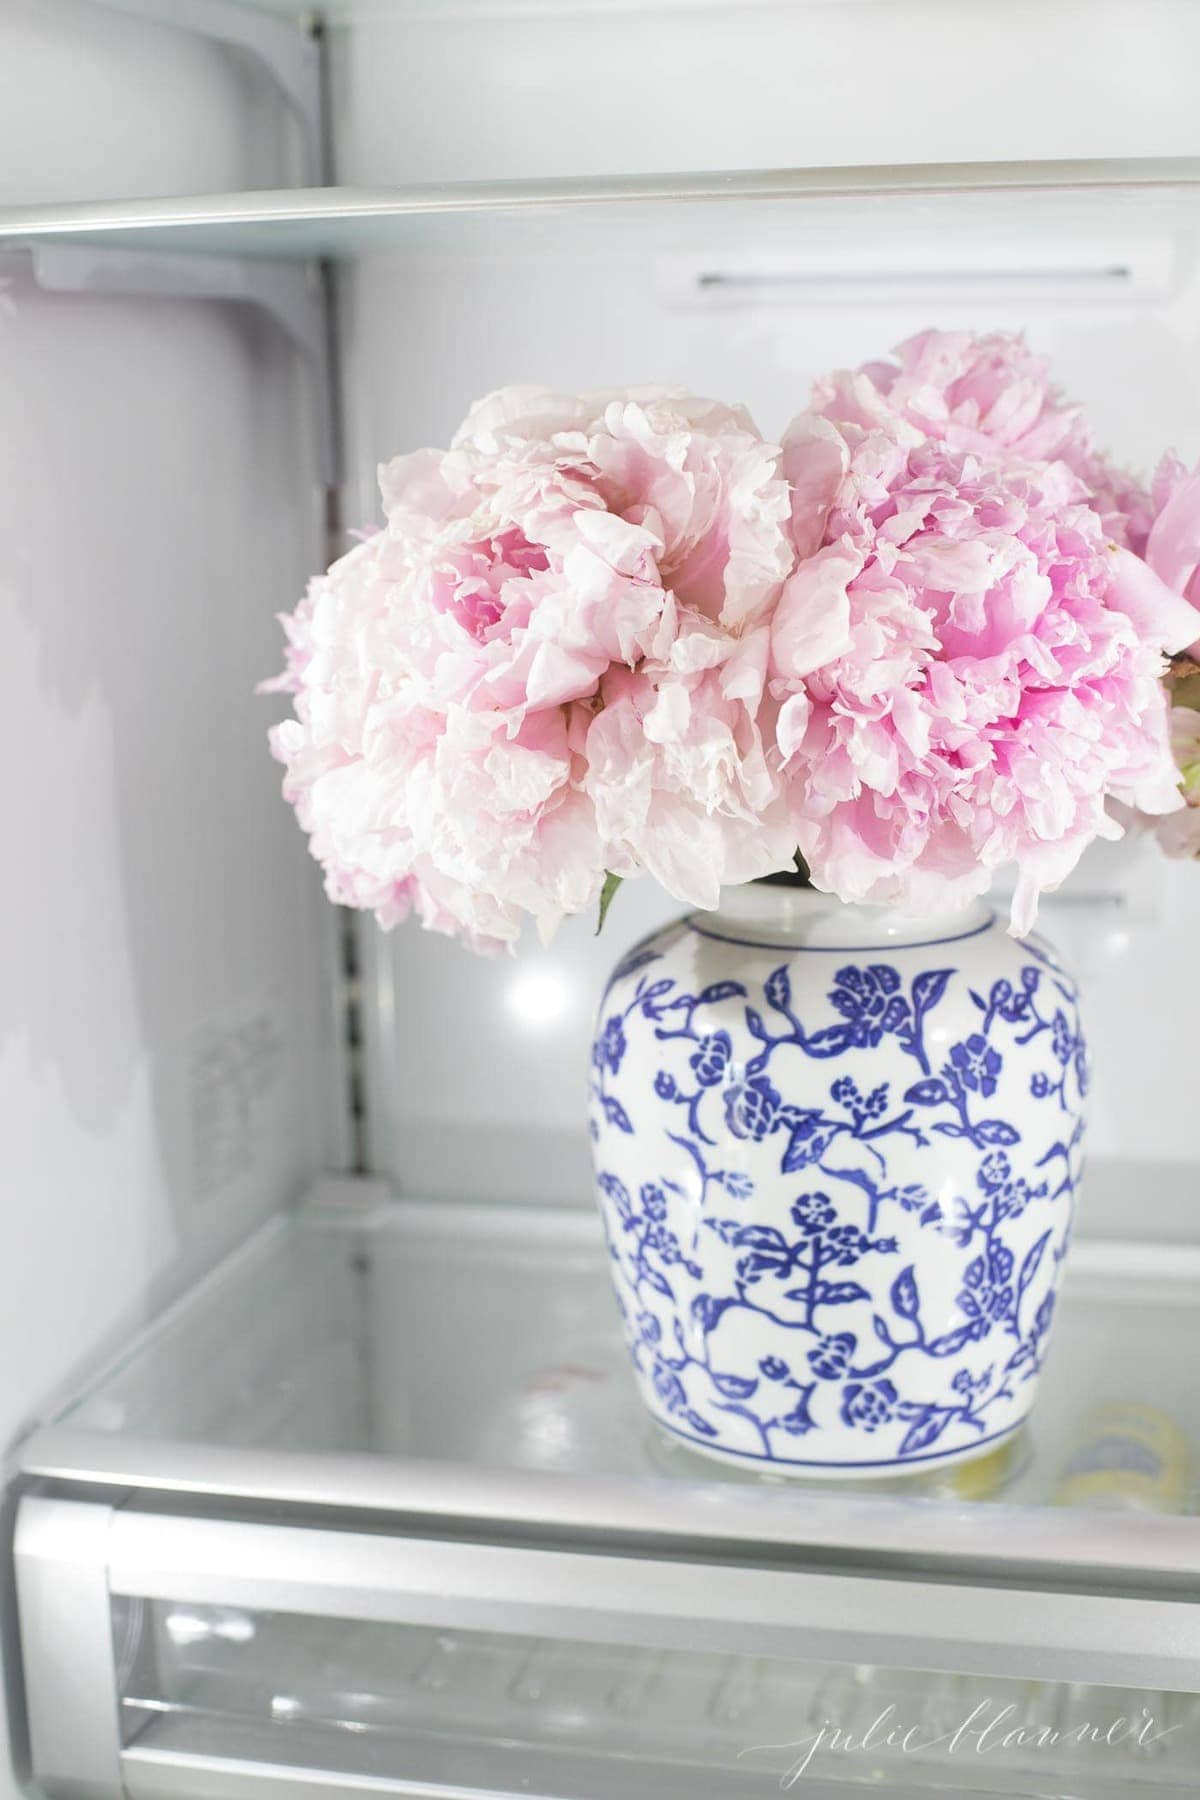 A vase of pink peonies inside a refrigerator to extend their life.